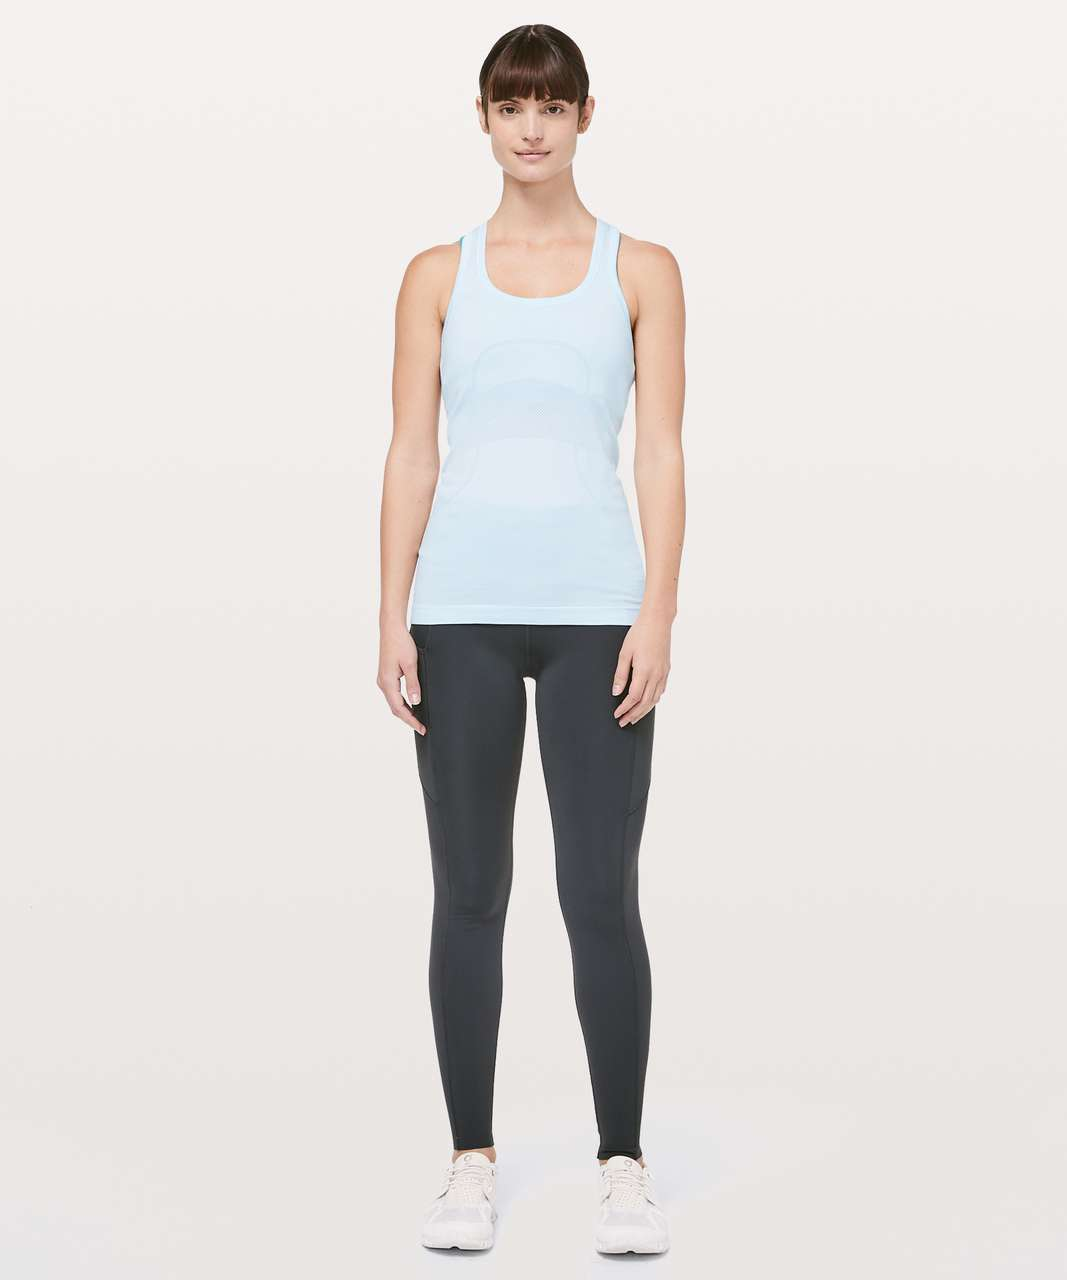 Lululemon Swiftly Tech Racerback - Sheer Blue / Sheer Blue